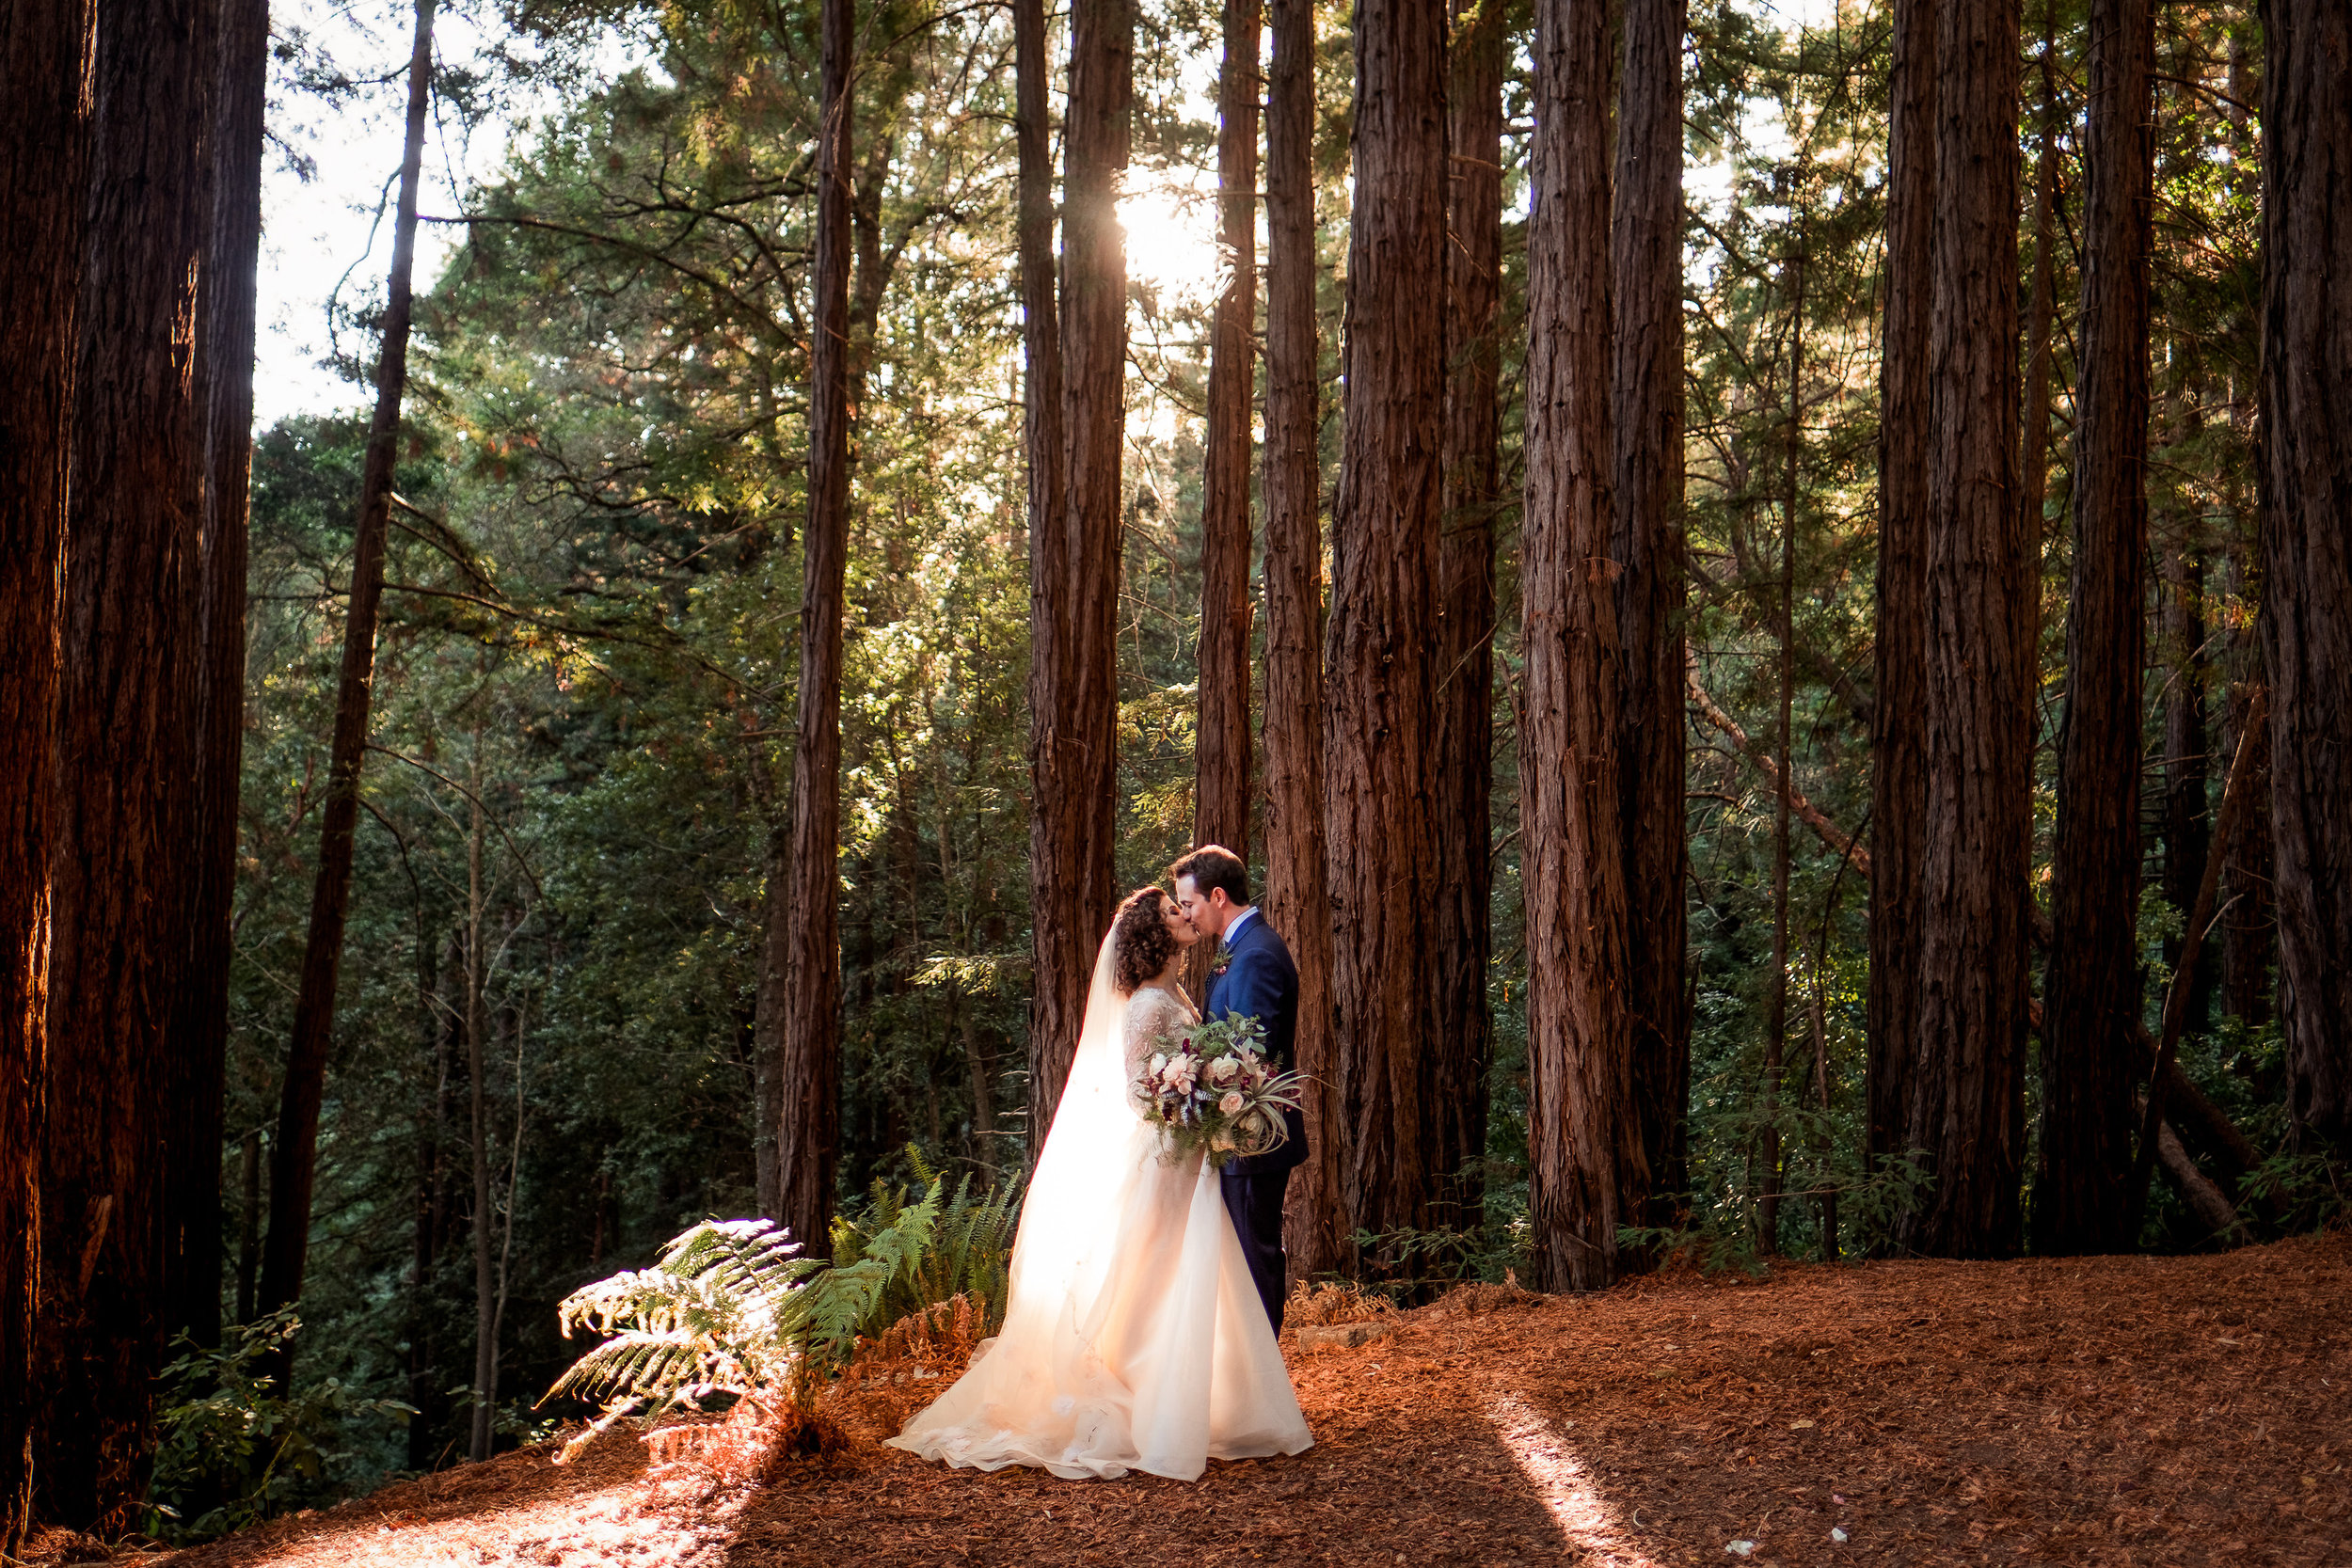 Magical Woodland California Wedding Venue, Sequoia Retreat Center, Art & Soul Events, Nordica Photo, Curly haired bride, Air Plant bouquet & flowers, Monique Lhuillier and Claire Pettibone Veil